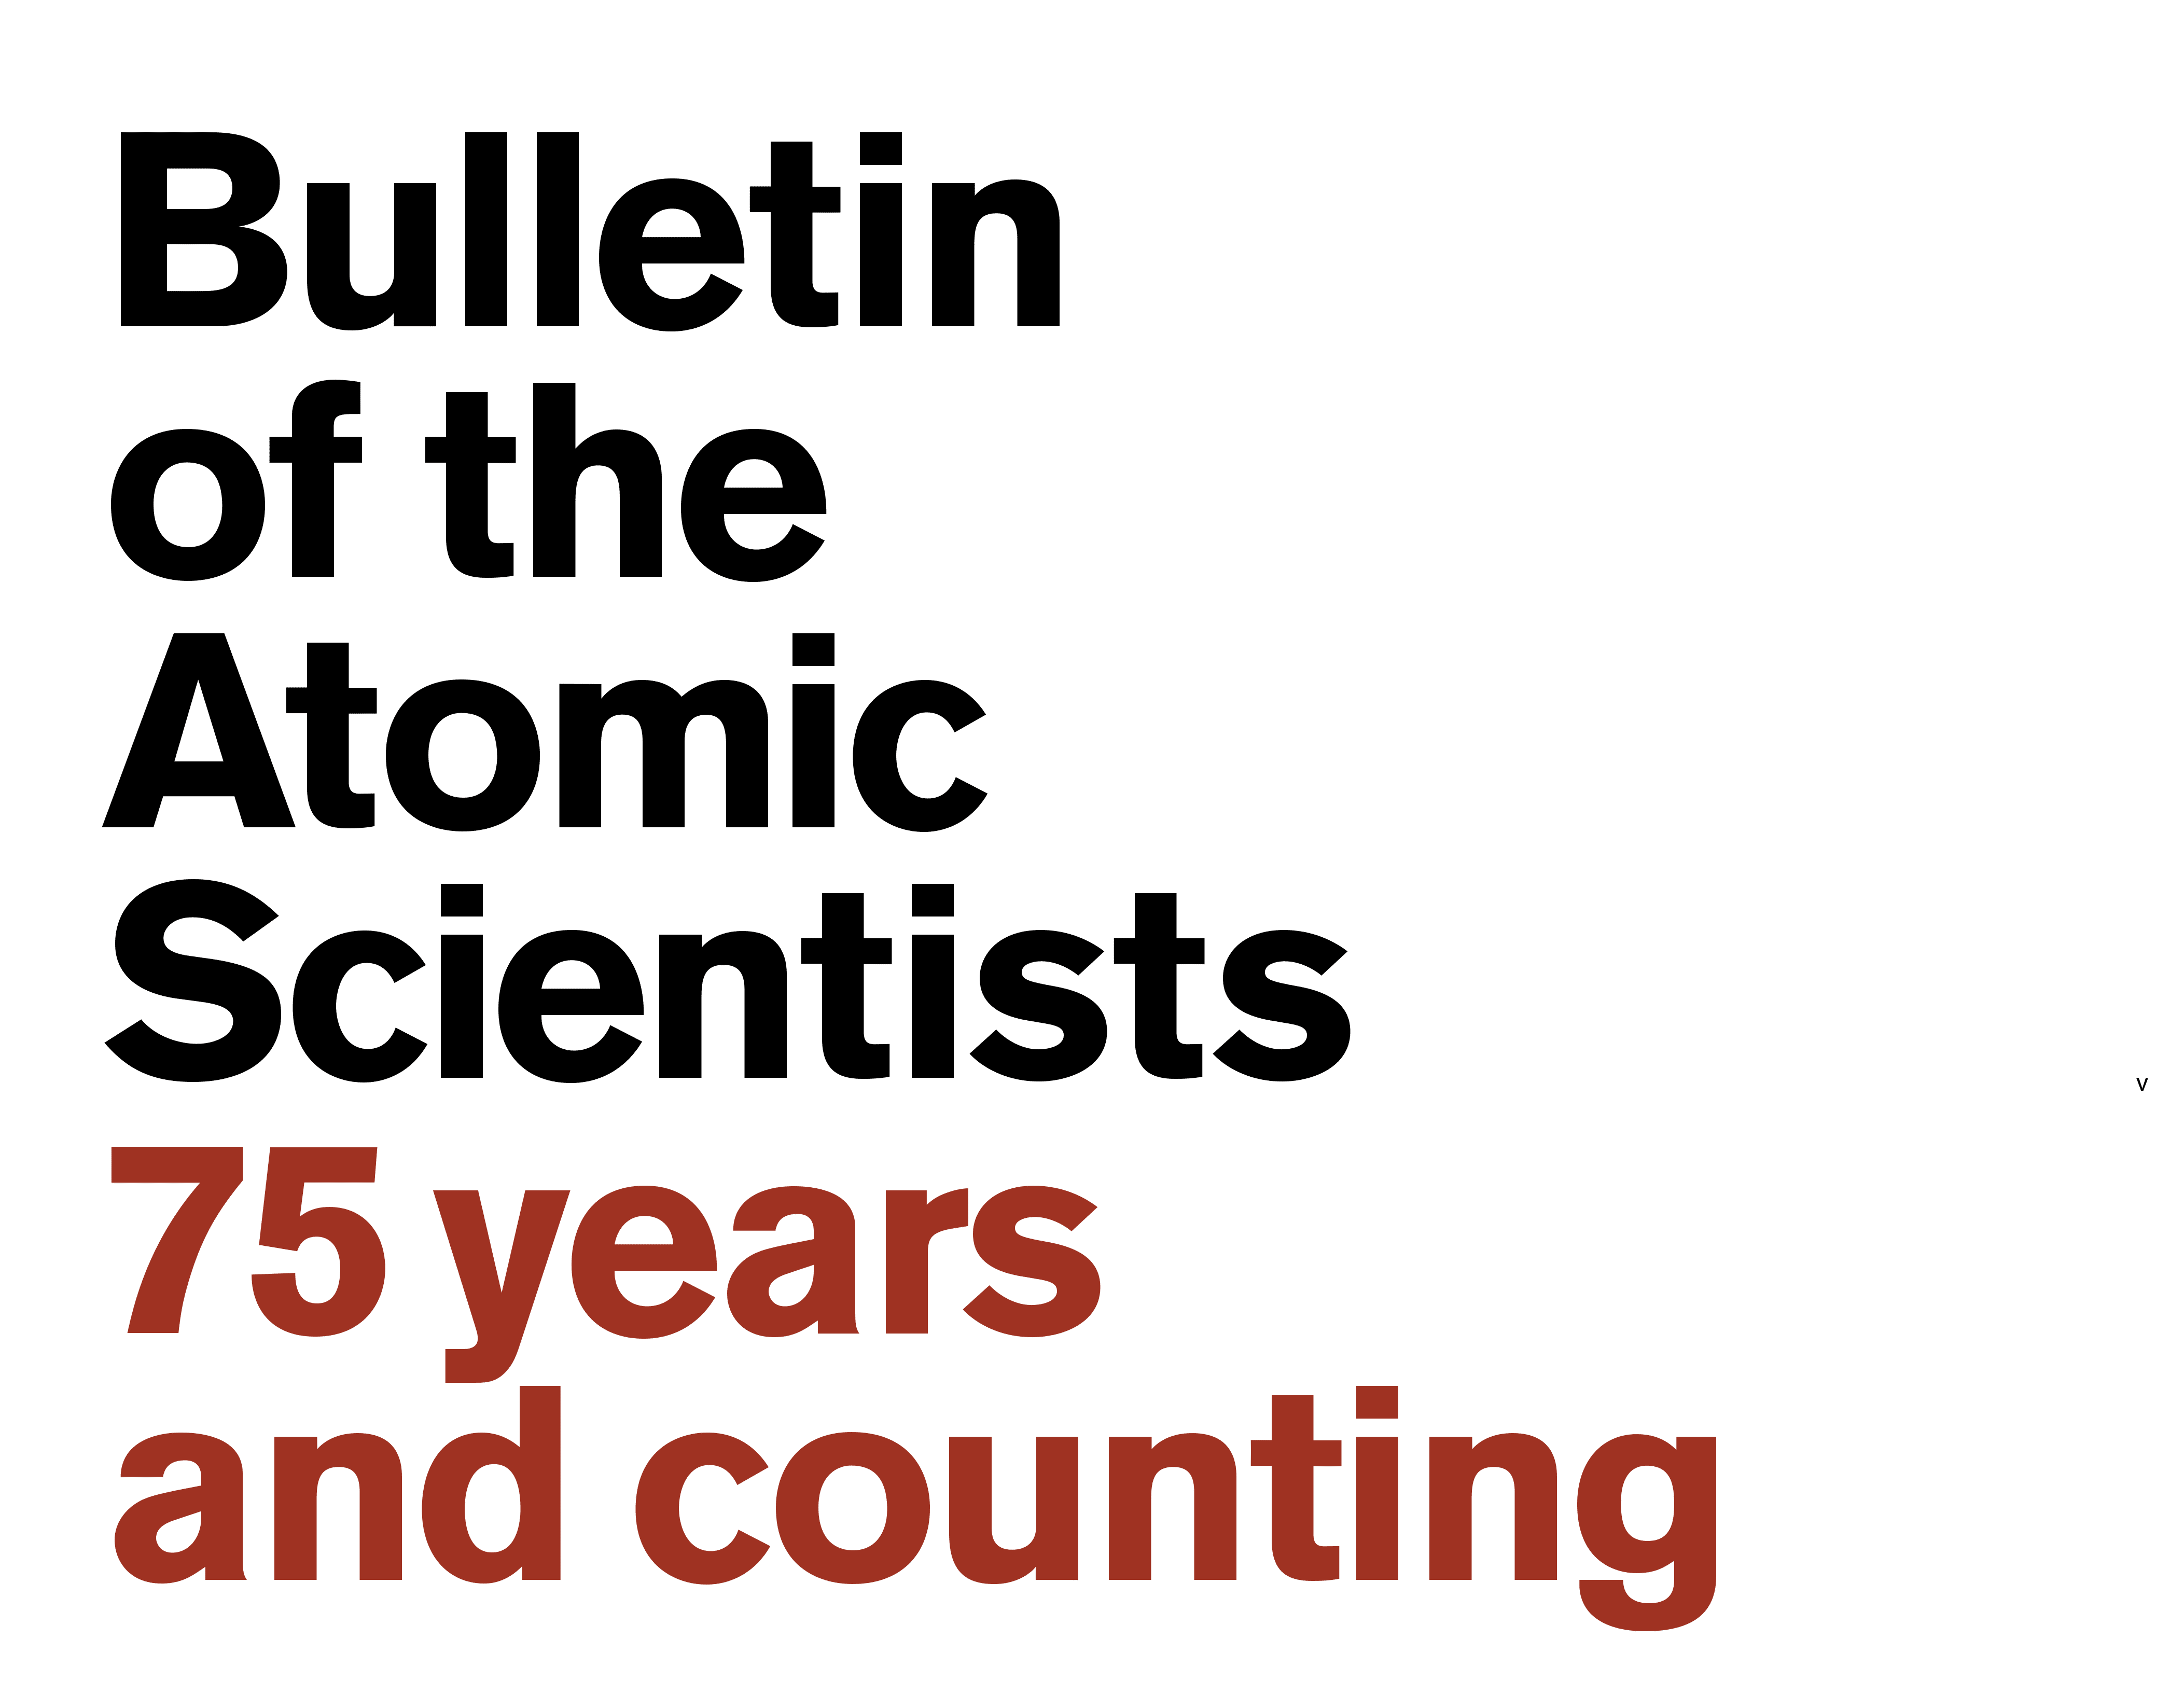 It's the Bulletin's 75th anniversary!